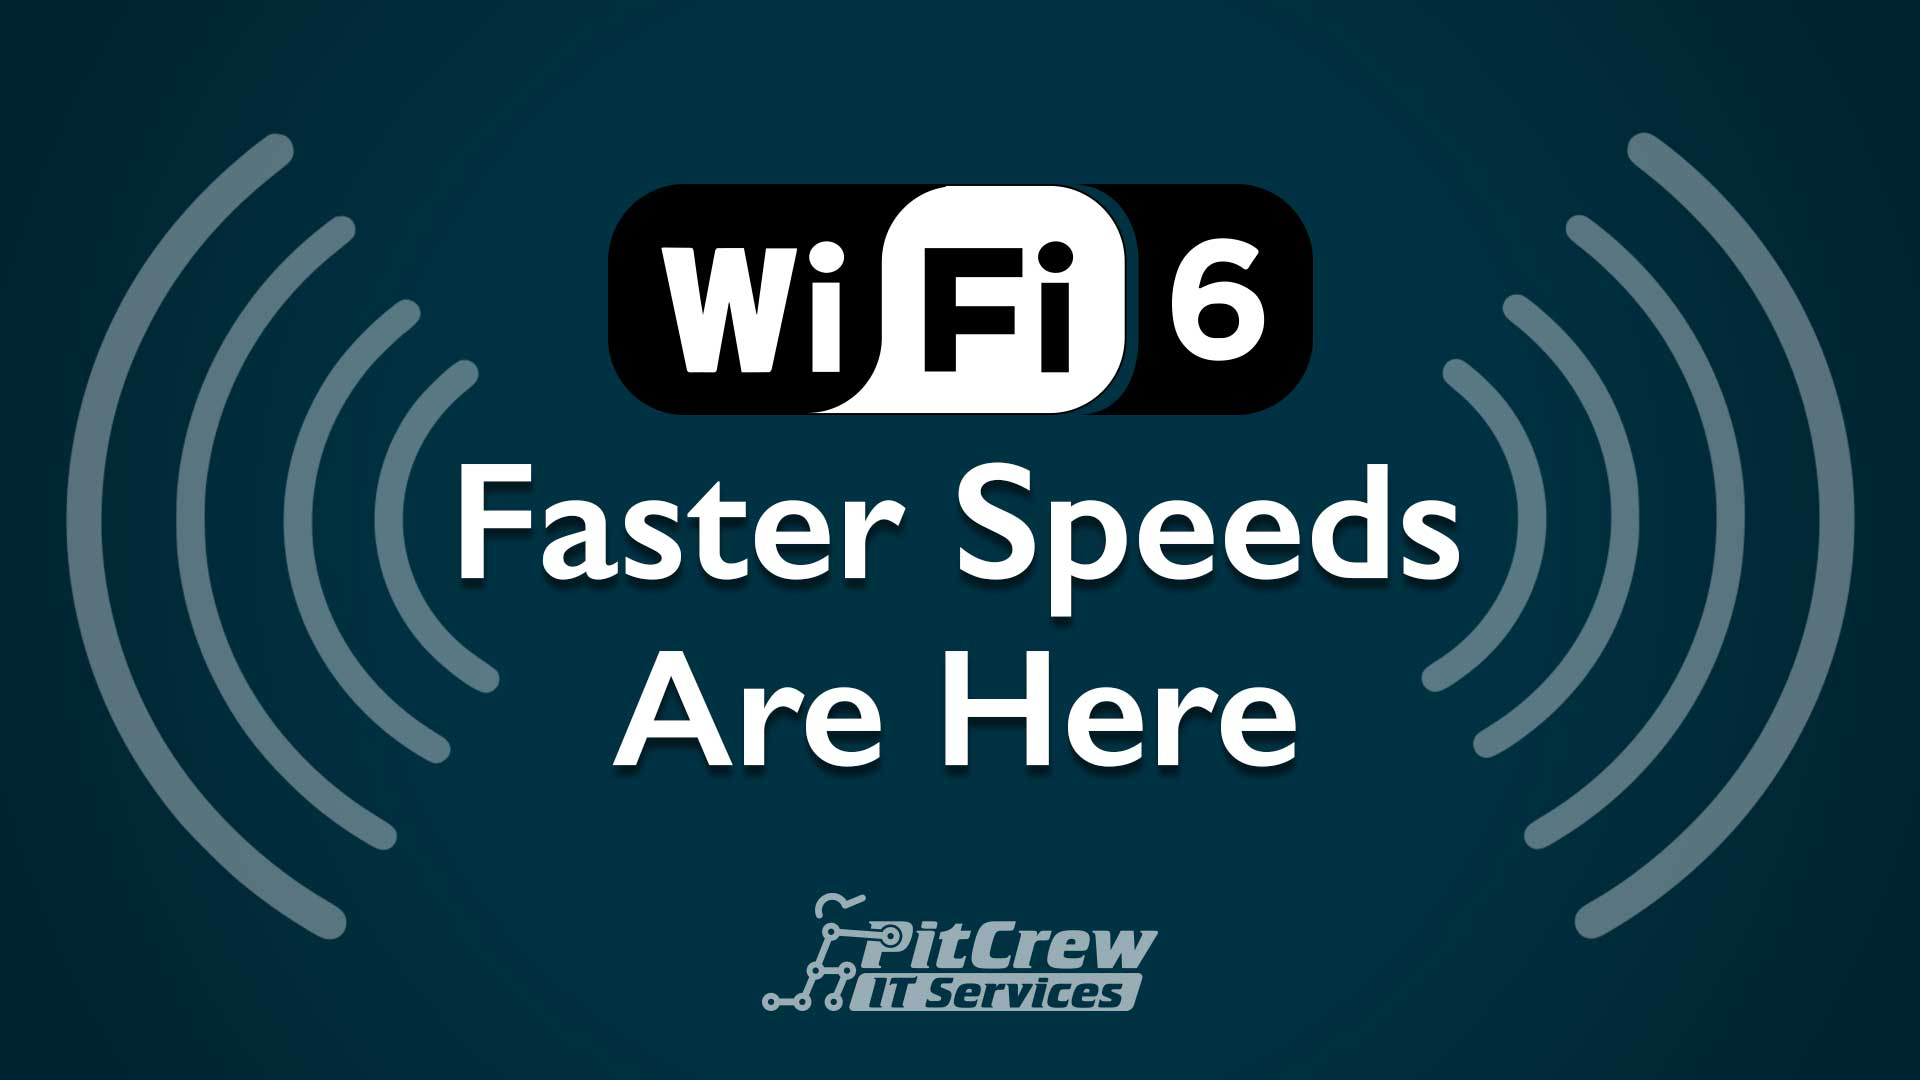 WiFi 6 Faster Speeds